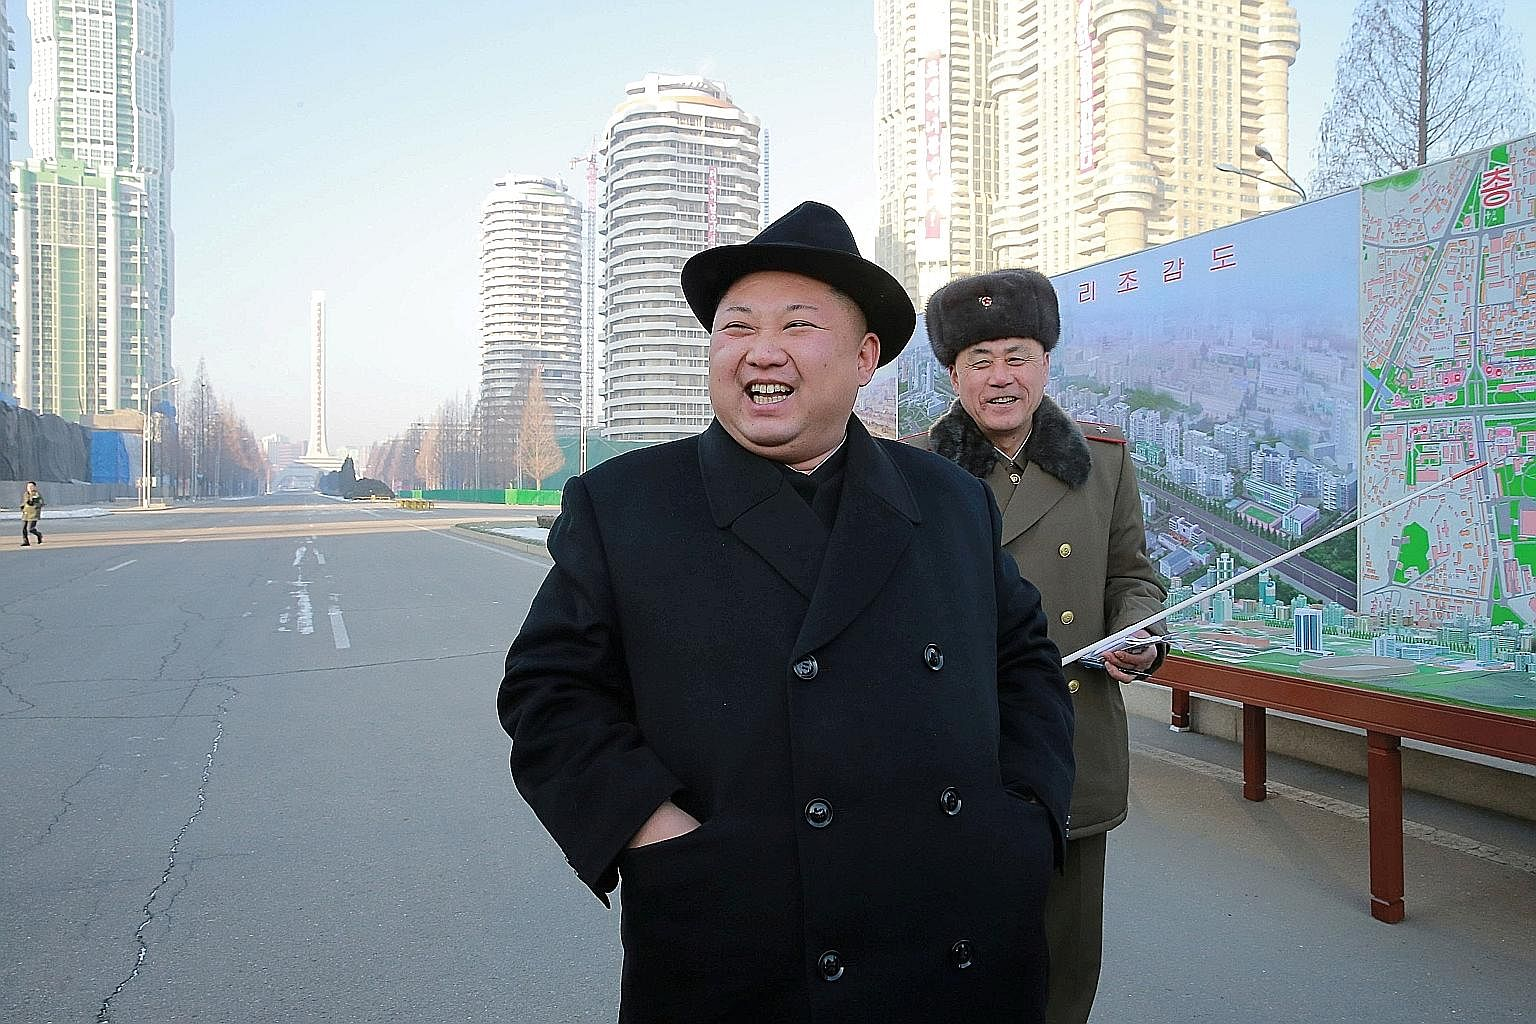 An undated photo of Mr Kim Jong Un inspecting a construction site, released by North Korea's Korean Central News Agency last month. Experts say he may have viewed his brother as a thorn and felt the need to eliminate him.